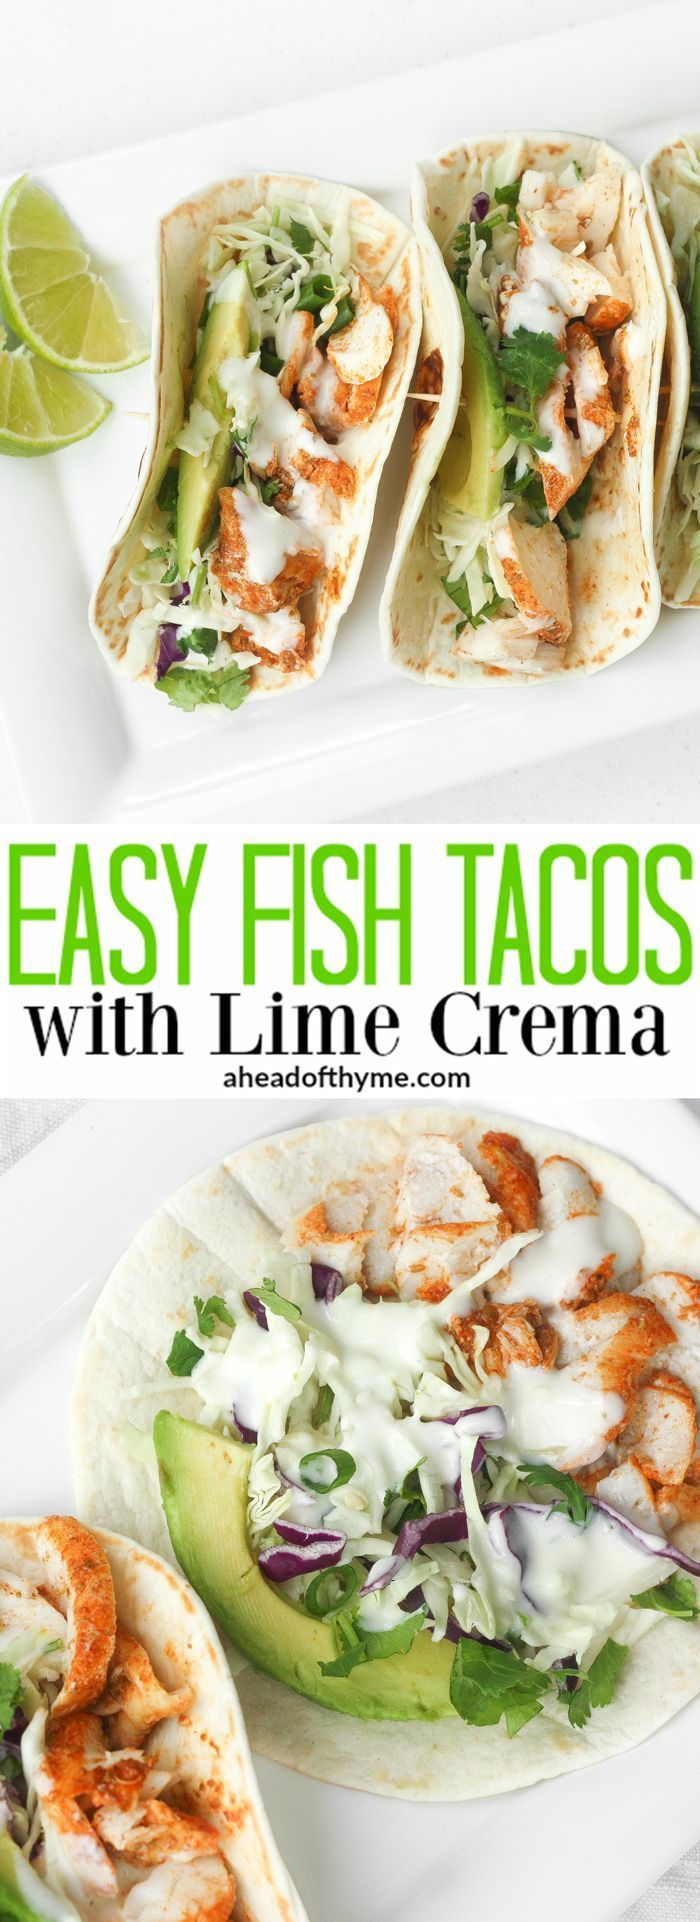 Grilled fish taco recipes easy